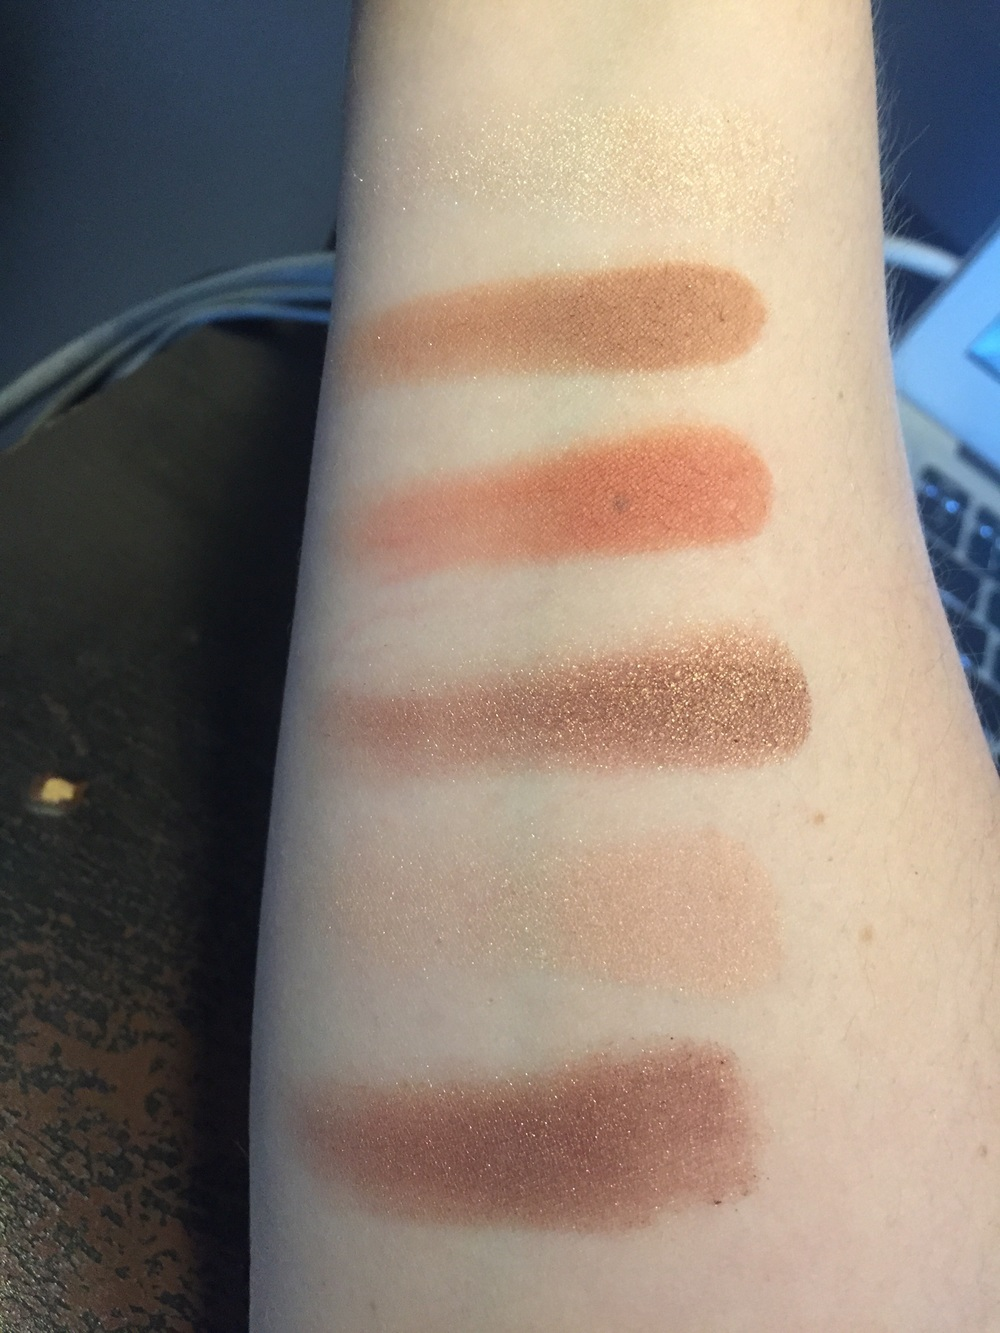 Palette swatched under fluorescent light